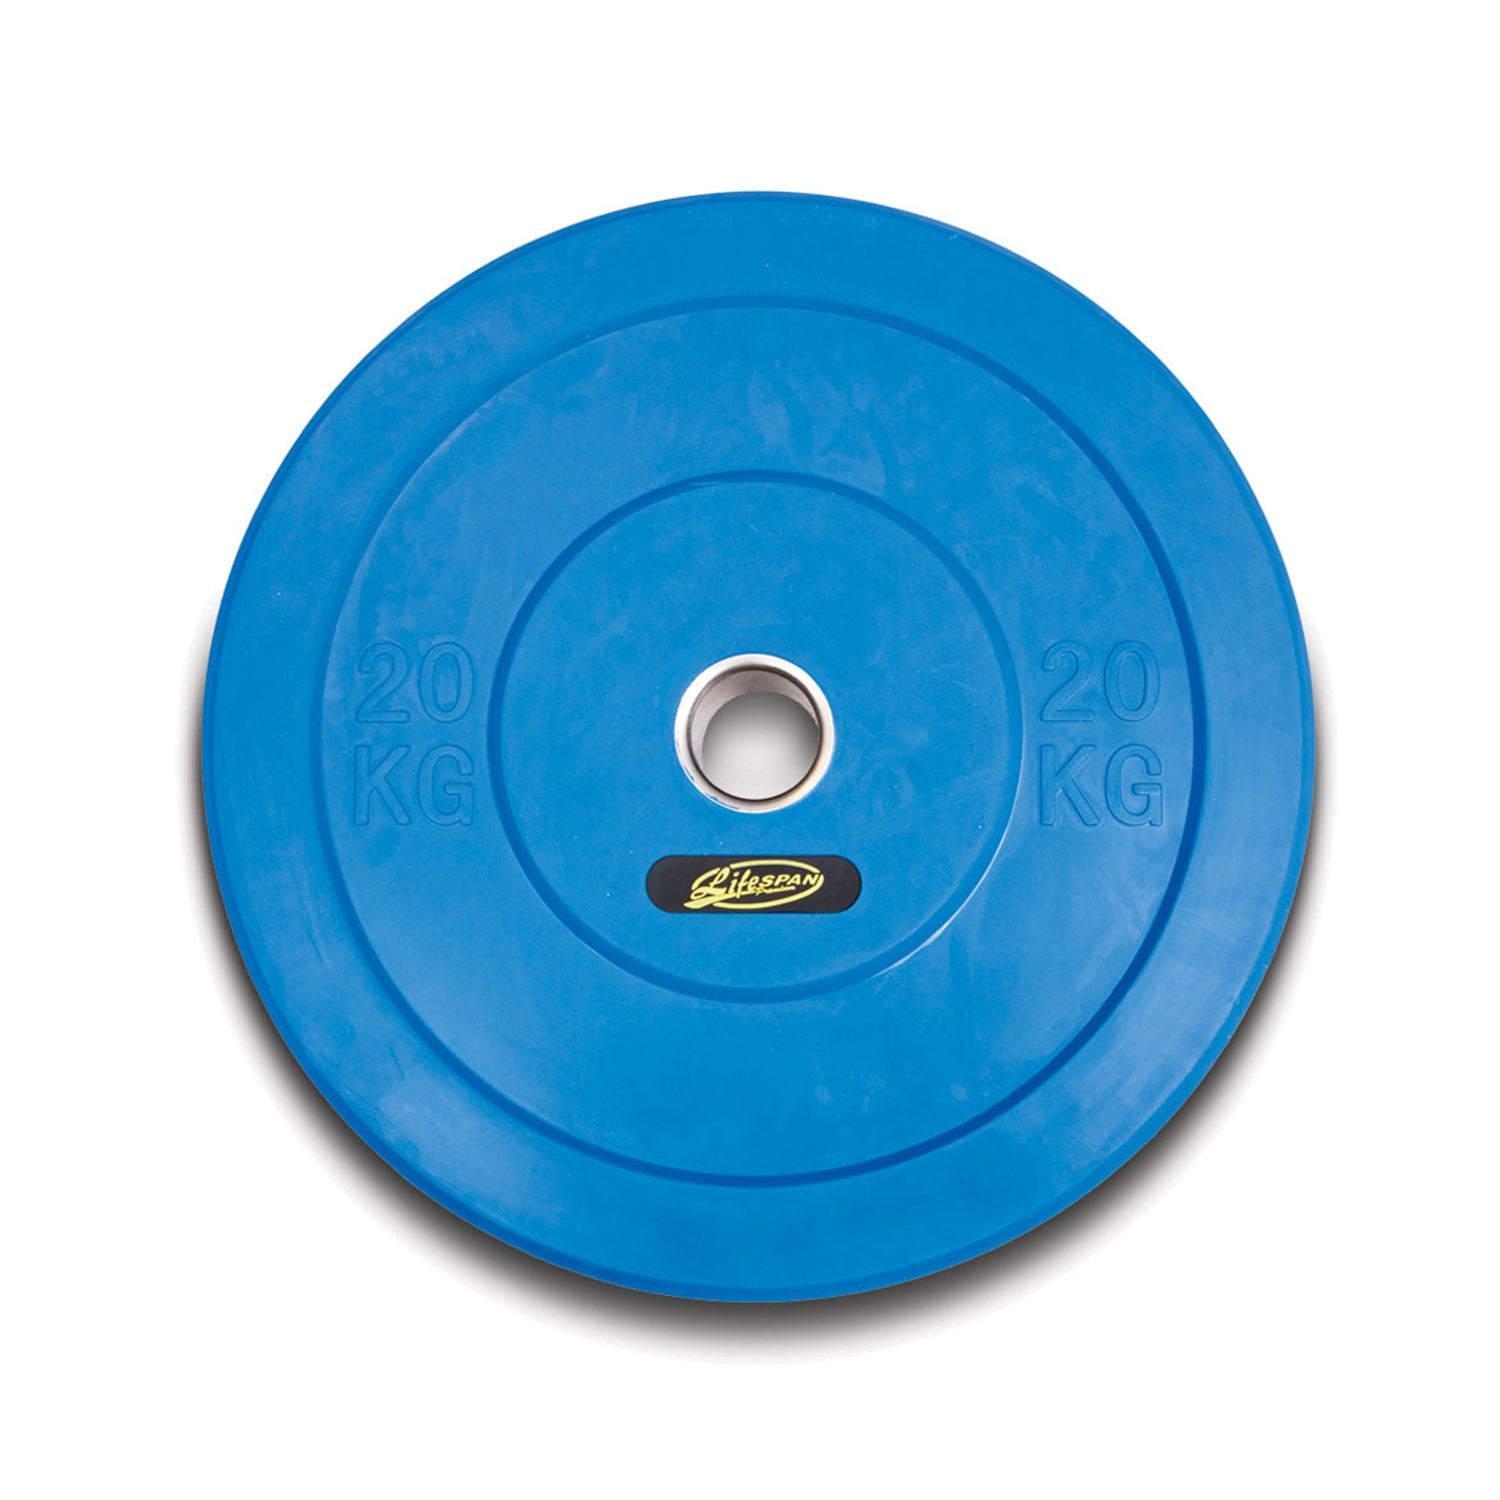 20KG Blue Olympic Bumper Plate